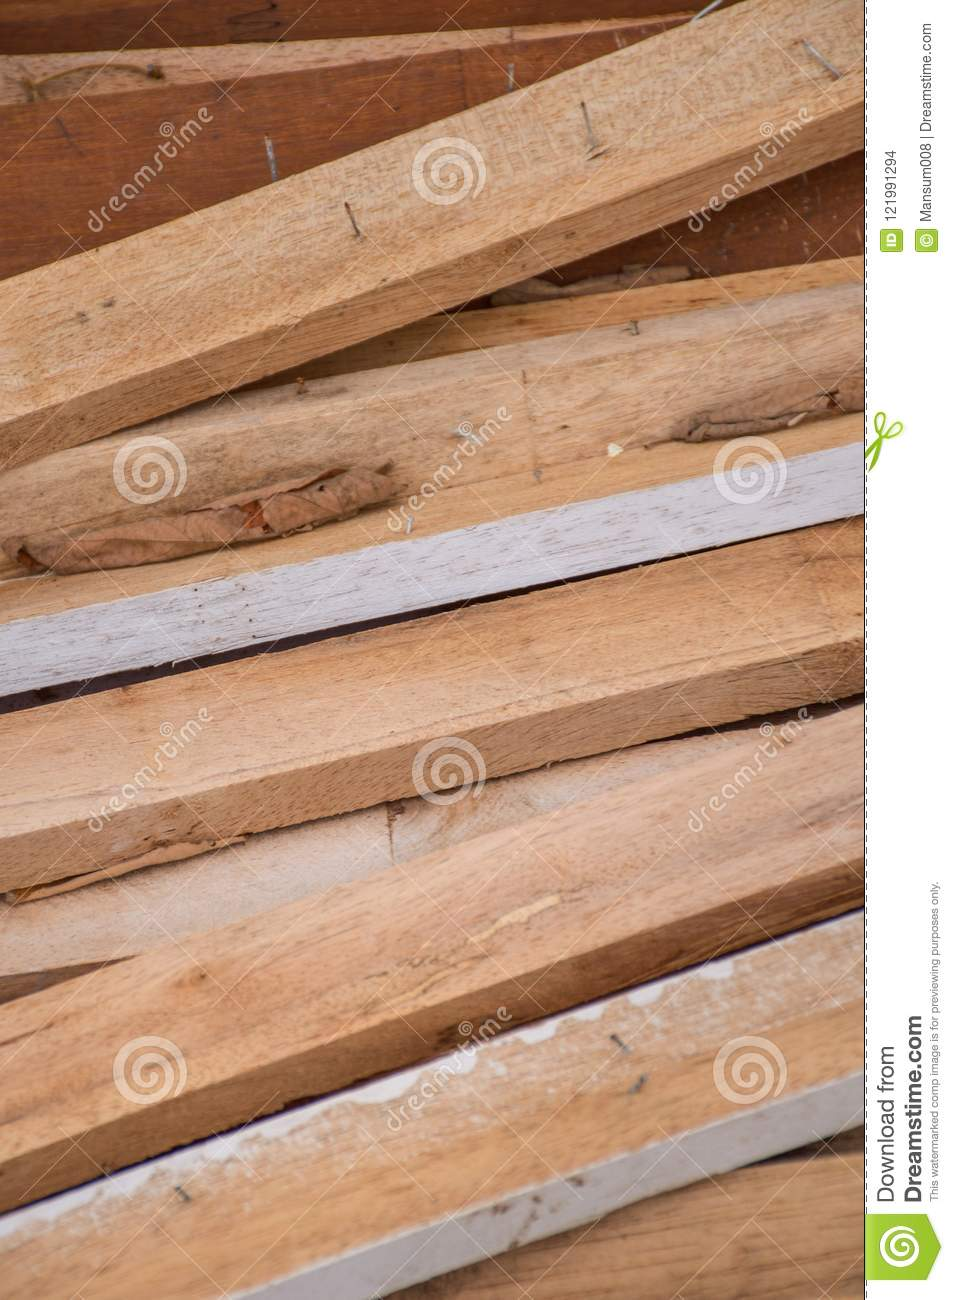 Dry plywood on the ground